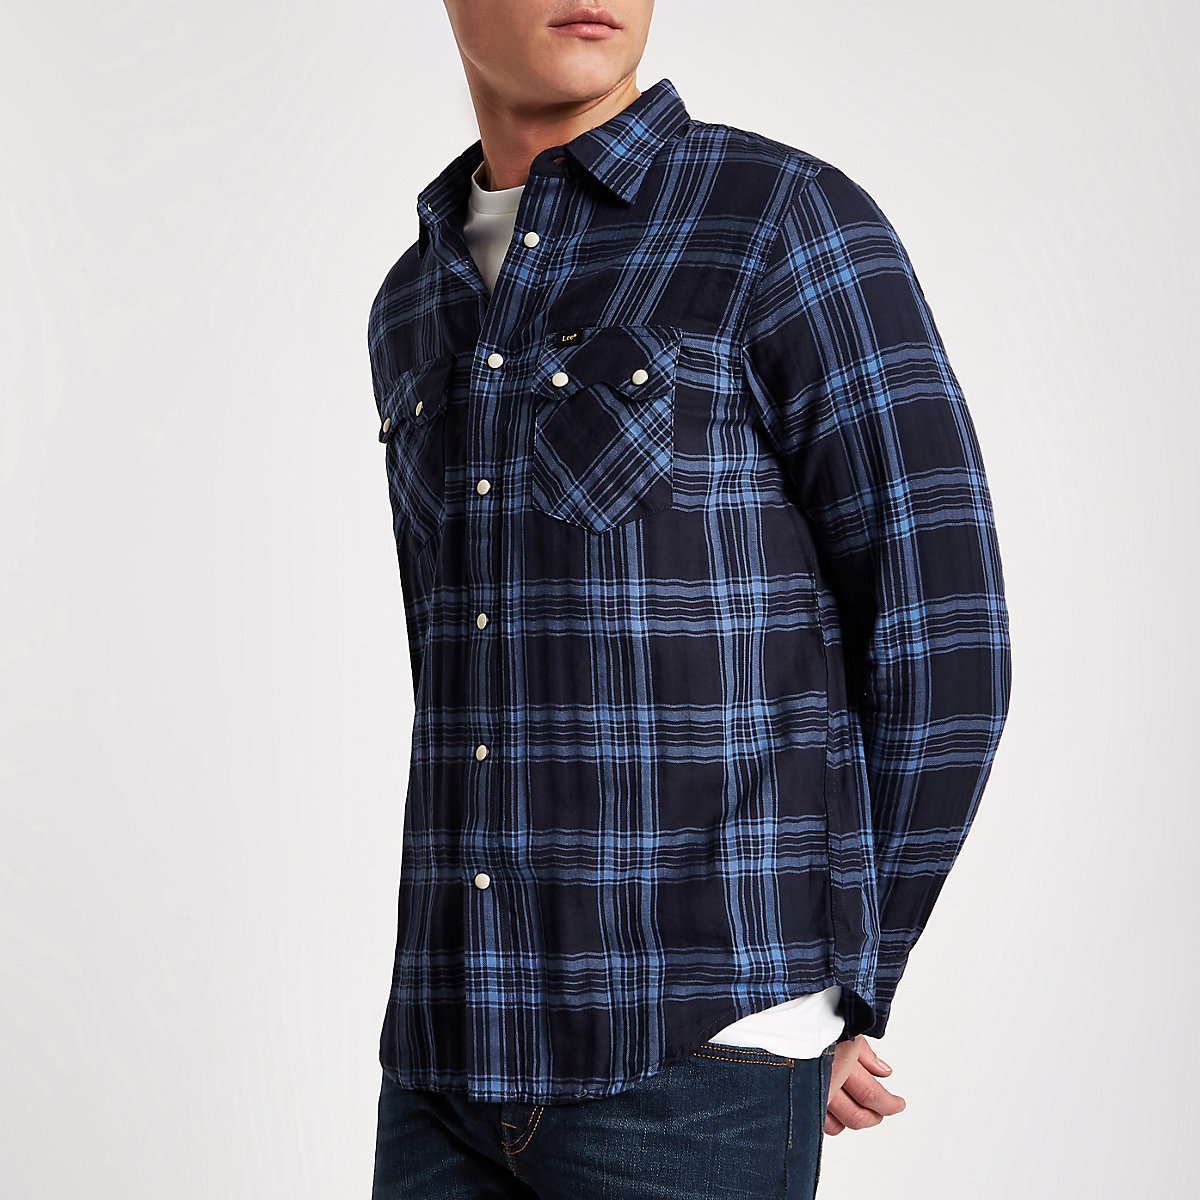 Lee blue check long sleeve Oxford shirt